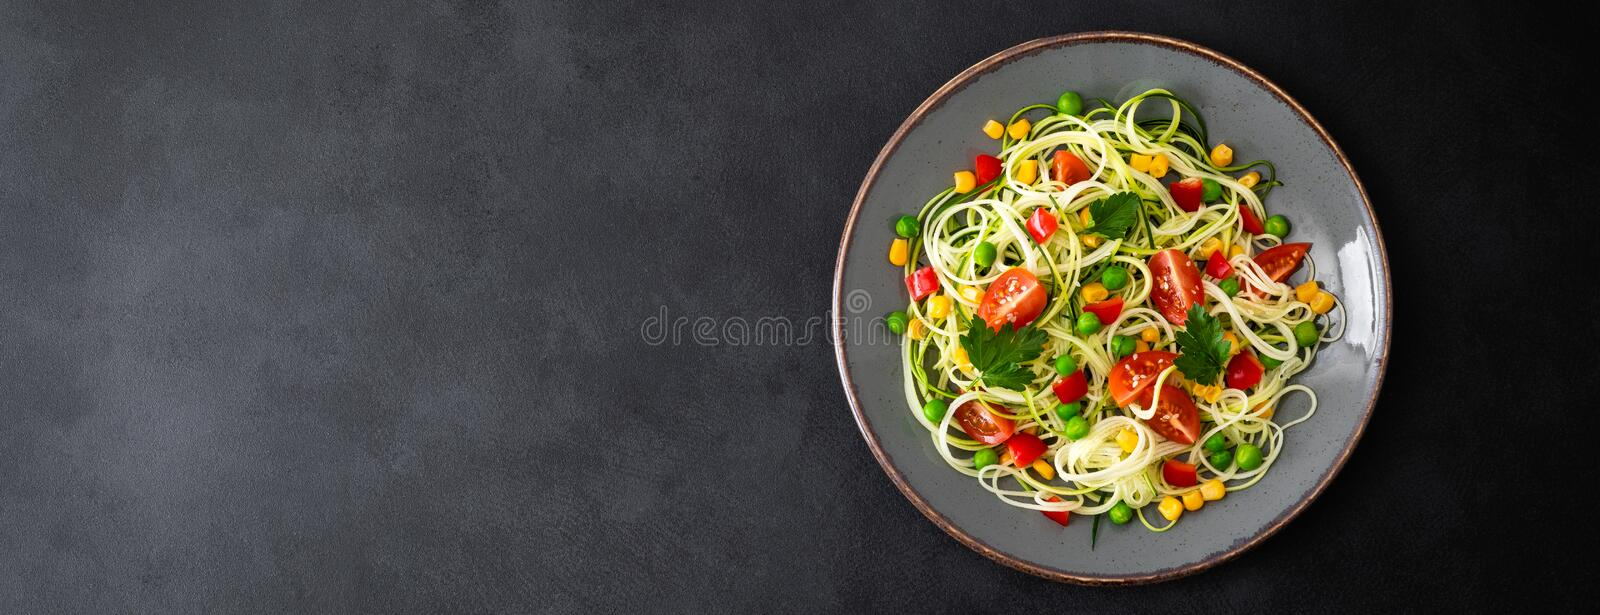 Zoodlie, healthy vegan food - zucchini noodlie with fresh green peas, tomato, bell pepper and corn for lunch royalty free stock photo